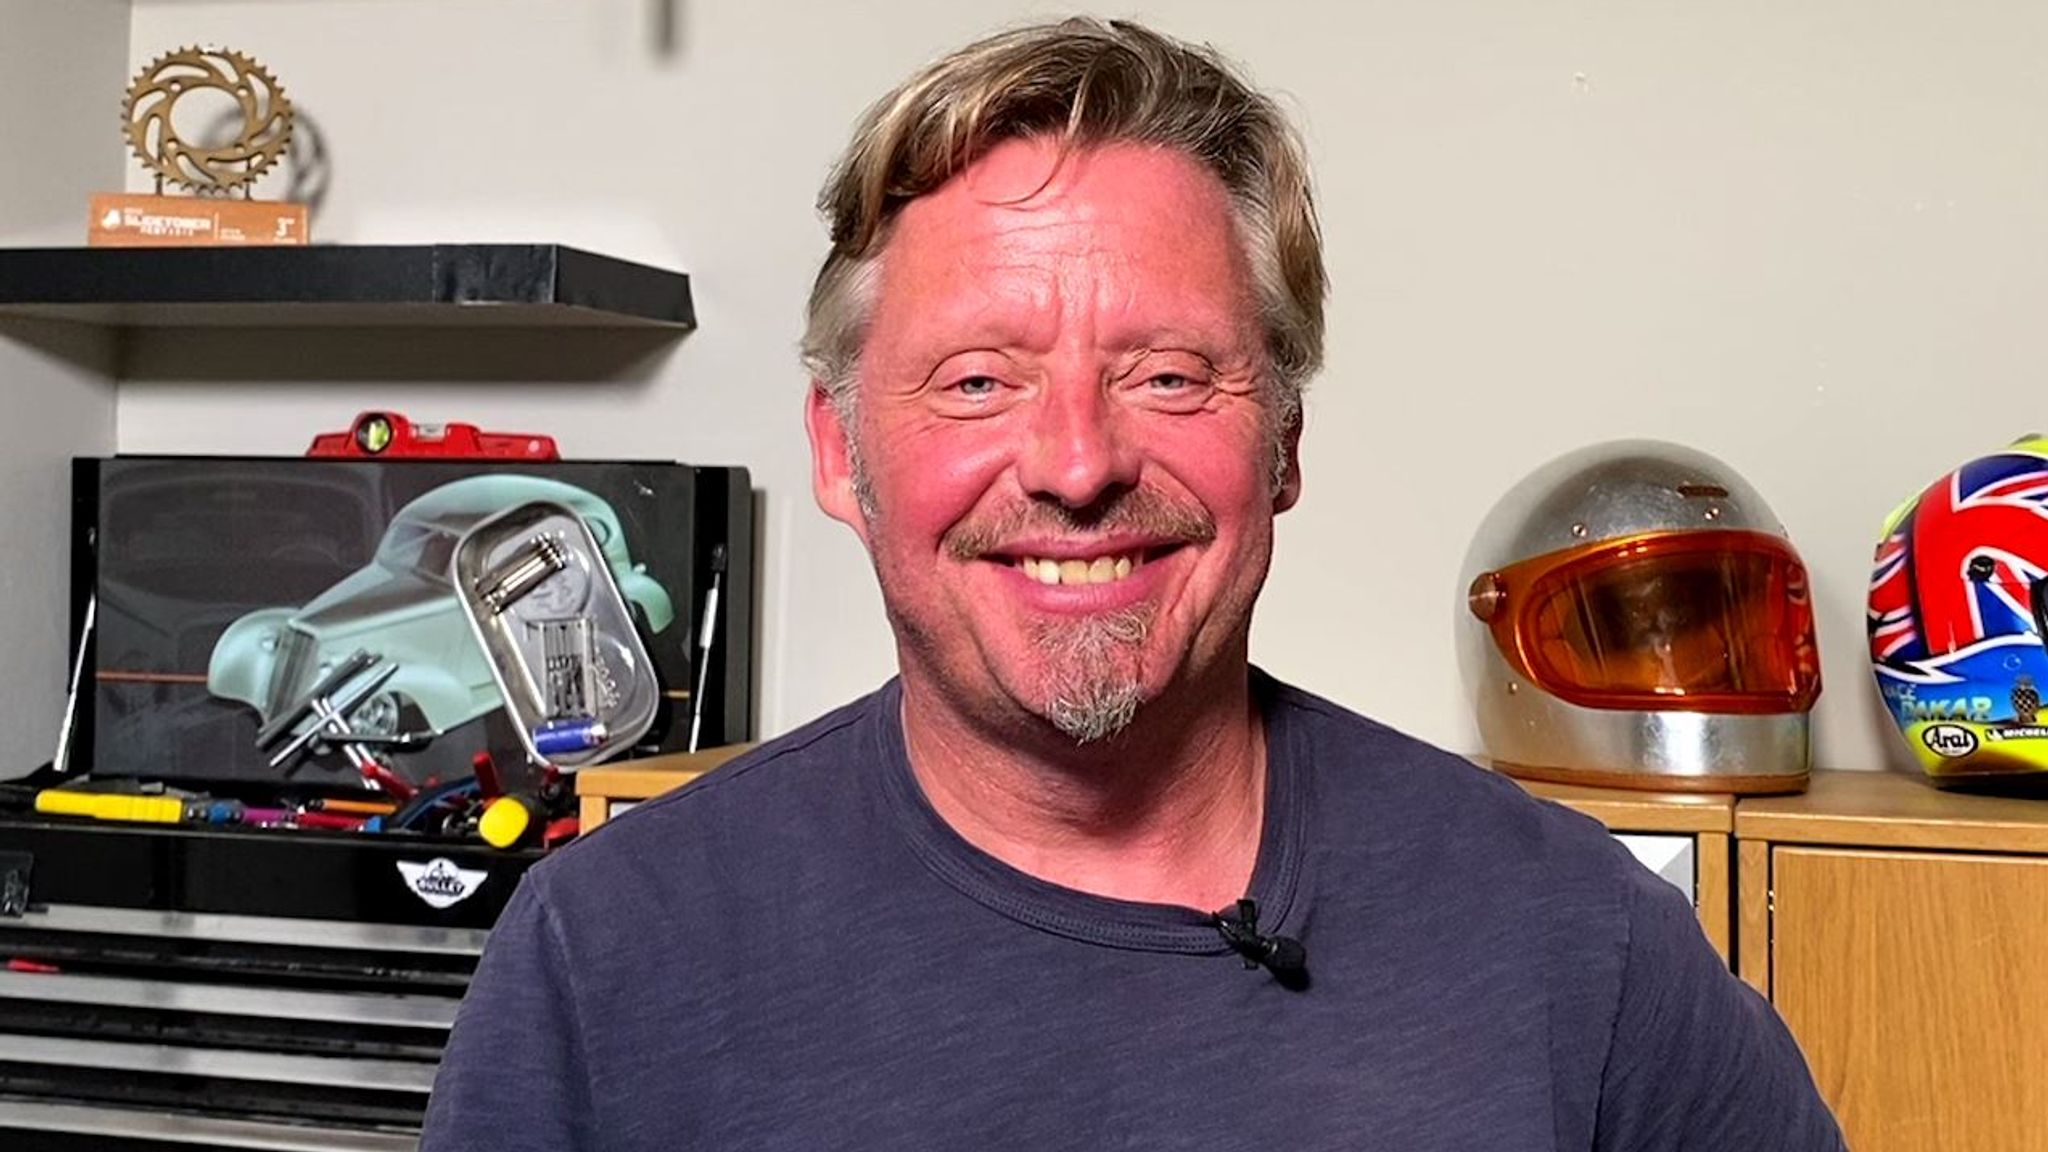 Charley Boorman had a big motorcycle accident not long before the trip